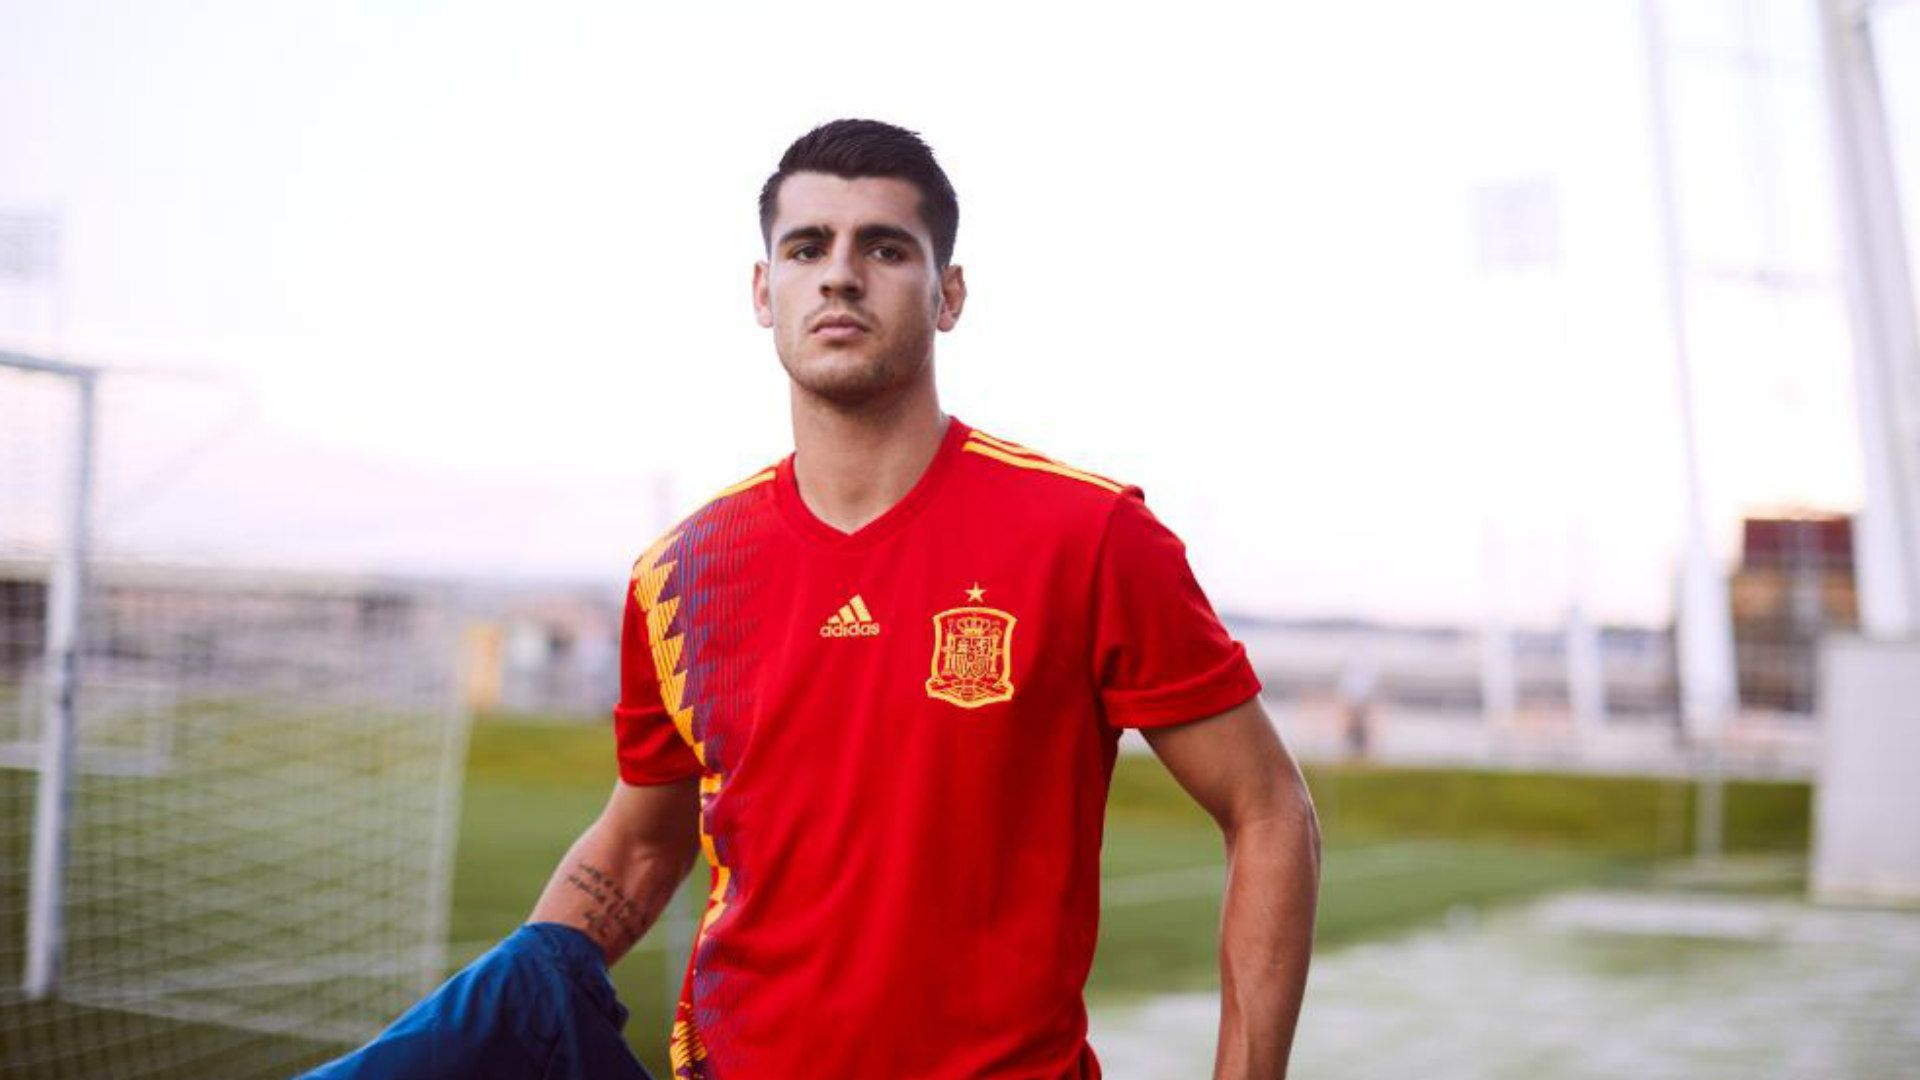 Spain World Cup 2018 kit New retro Adidas design